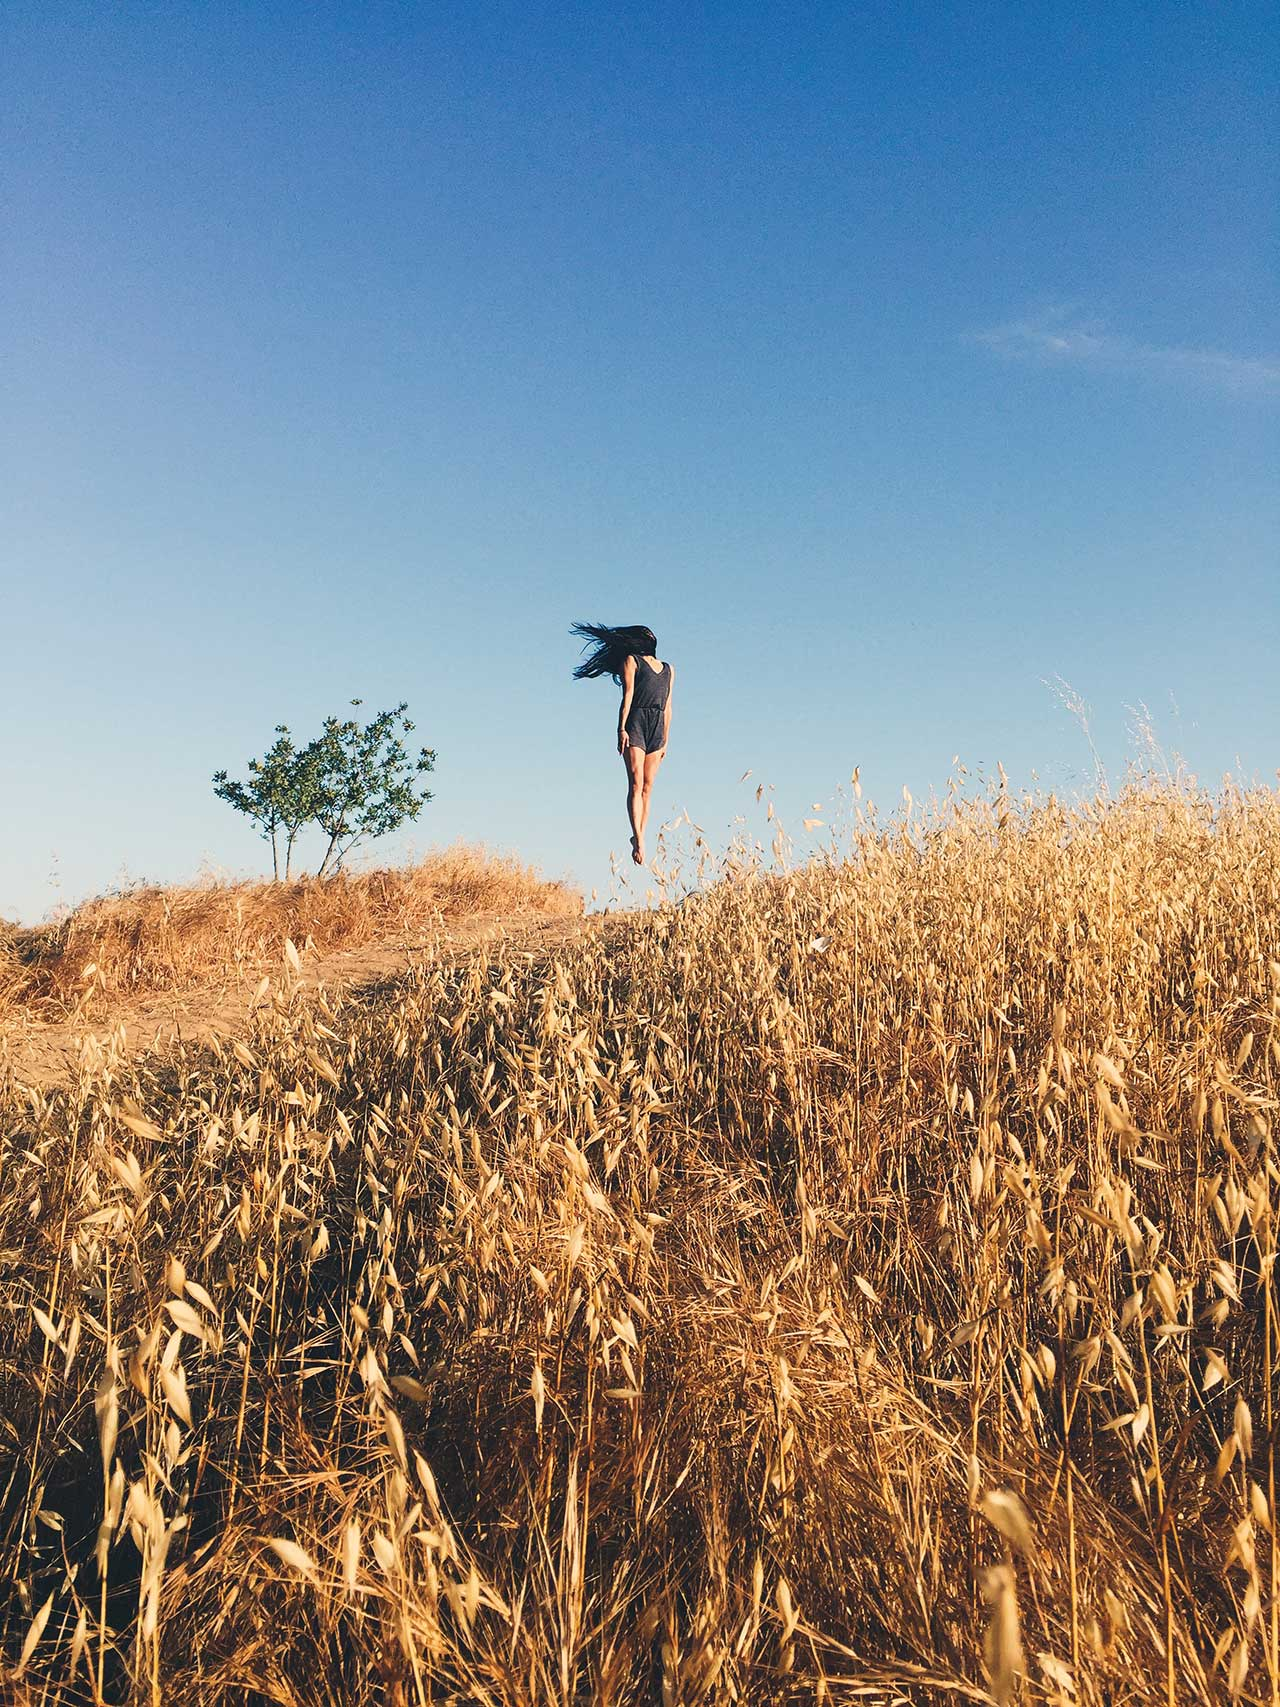 Location: Topanga Canyon | Dancer Marissa Labog | Photo © Zachary Alexopulos from the series #CamerasandDancers.